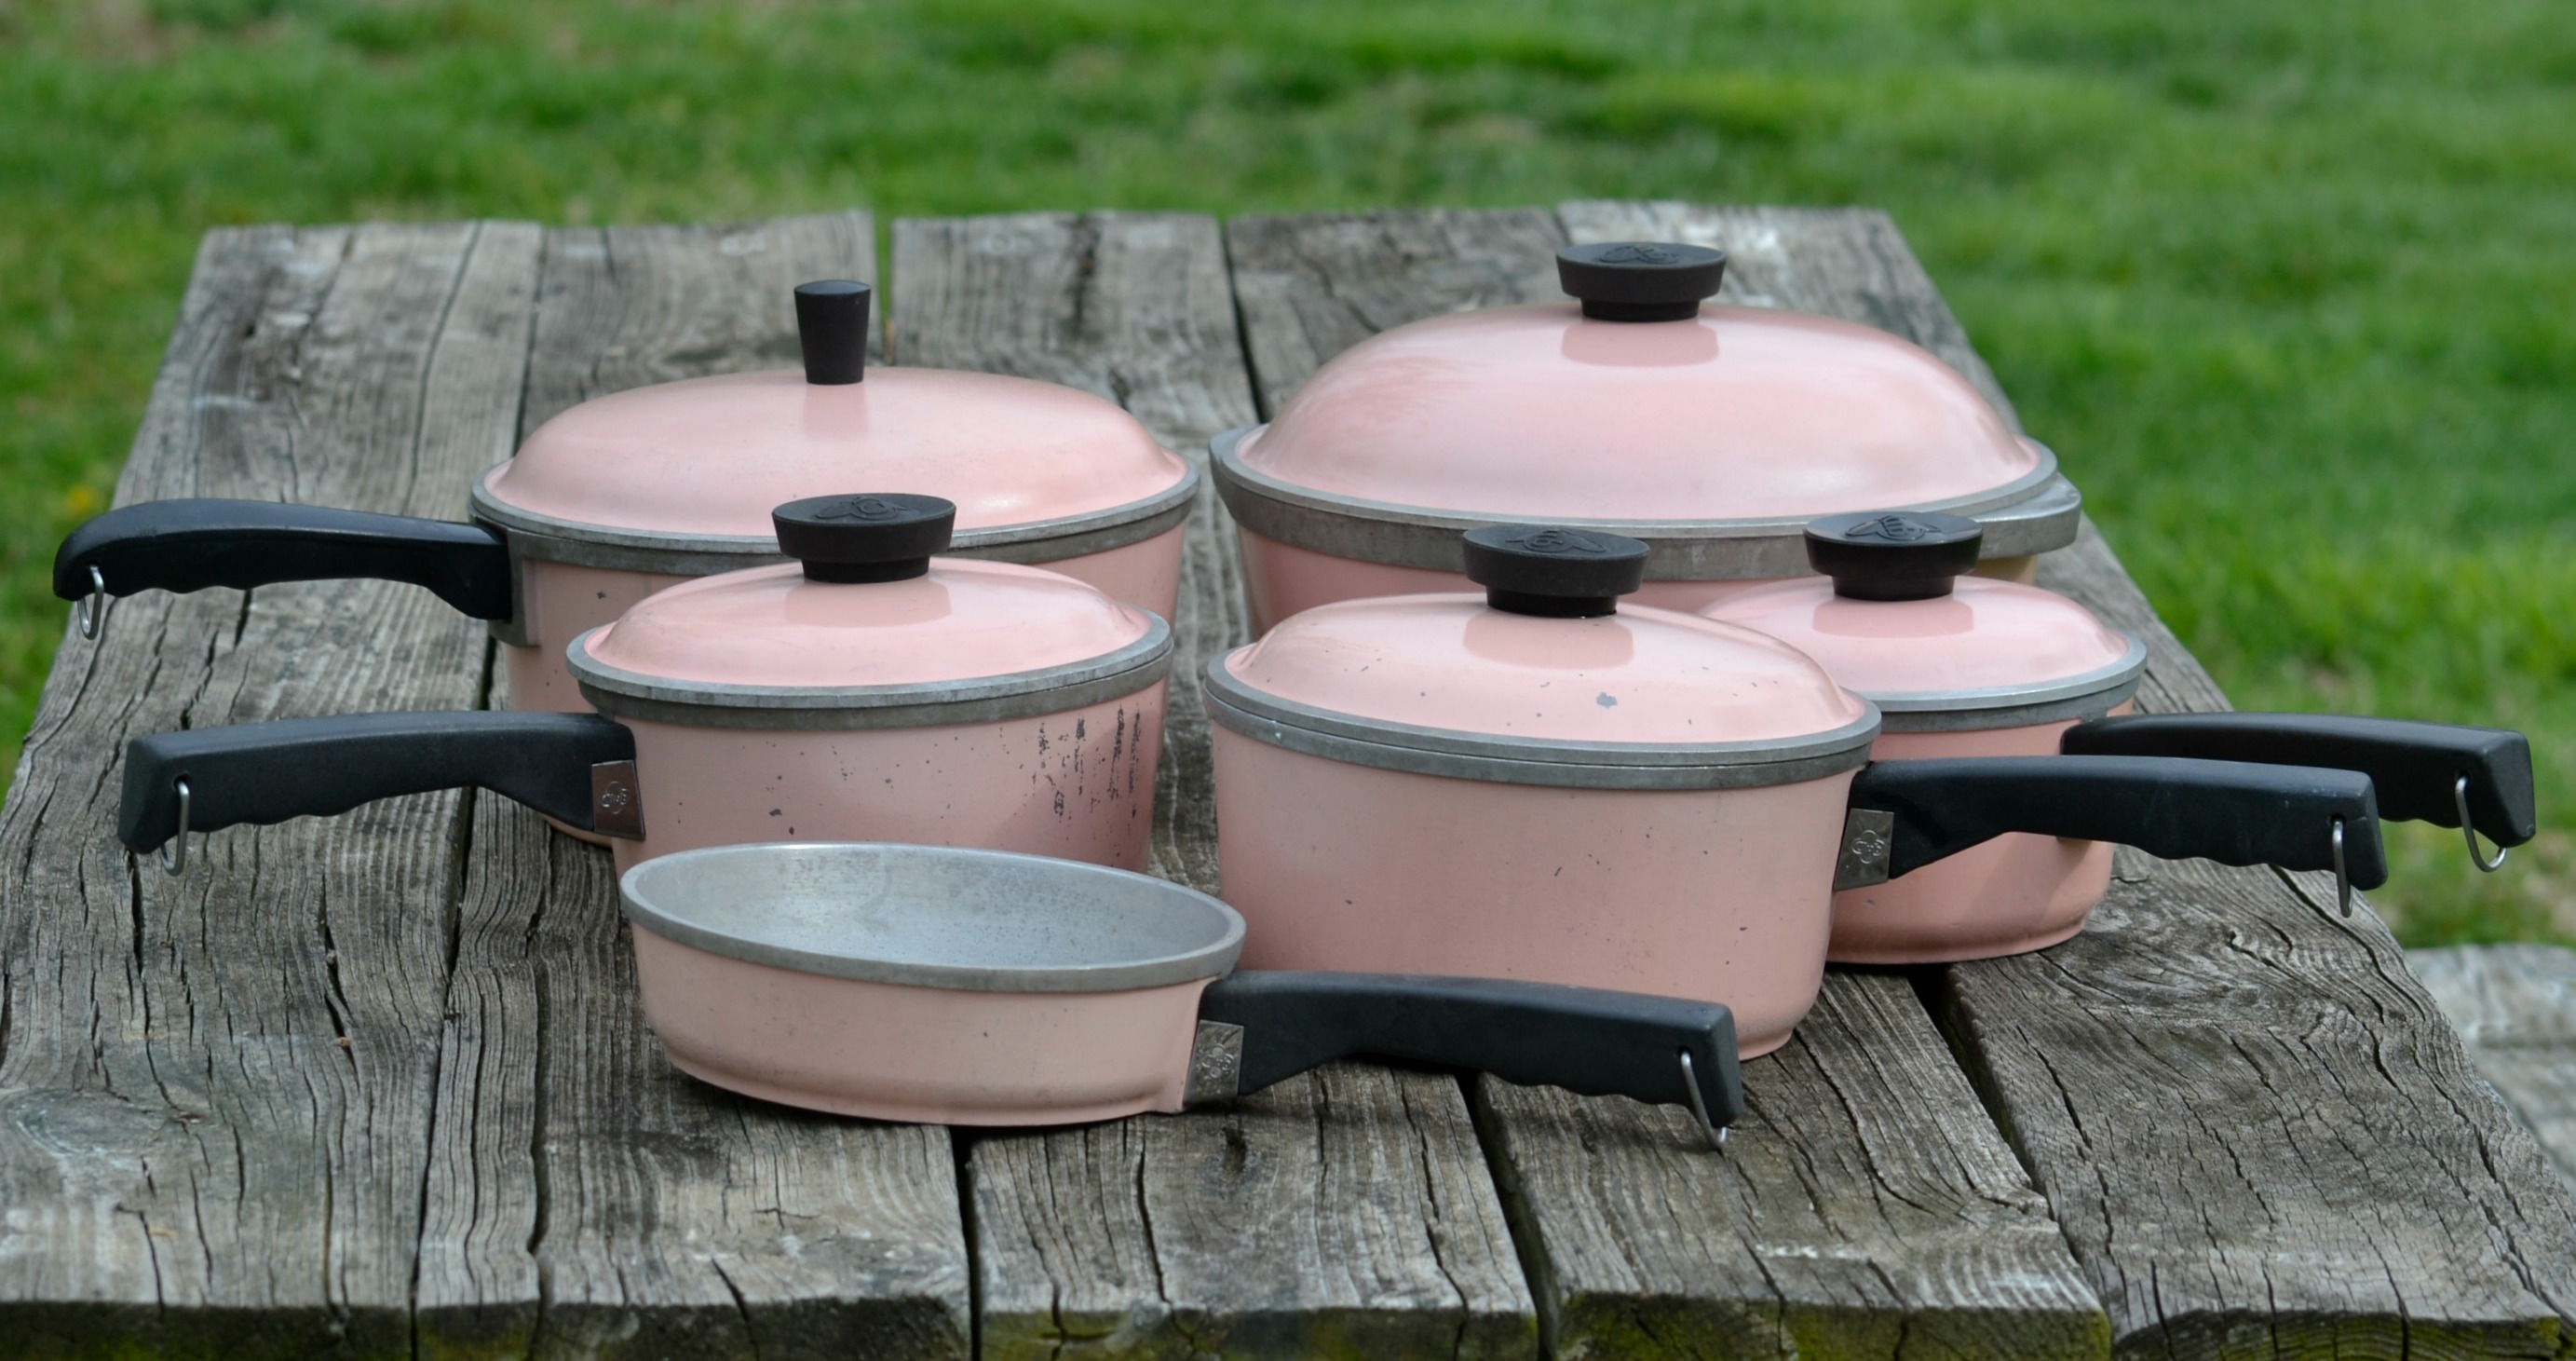 Pink Club Aluminum Cookware – Hello Beautiful!